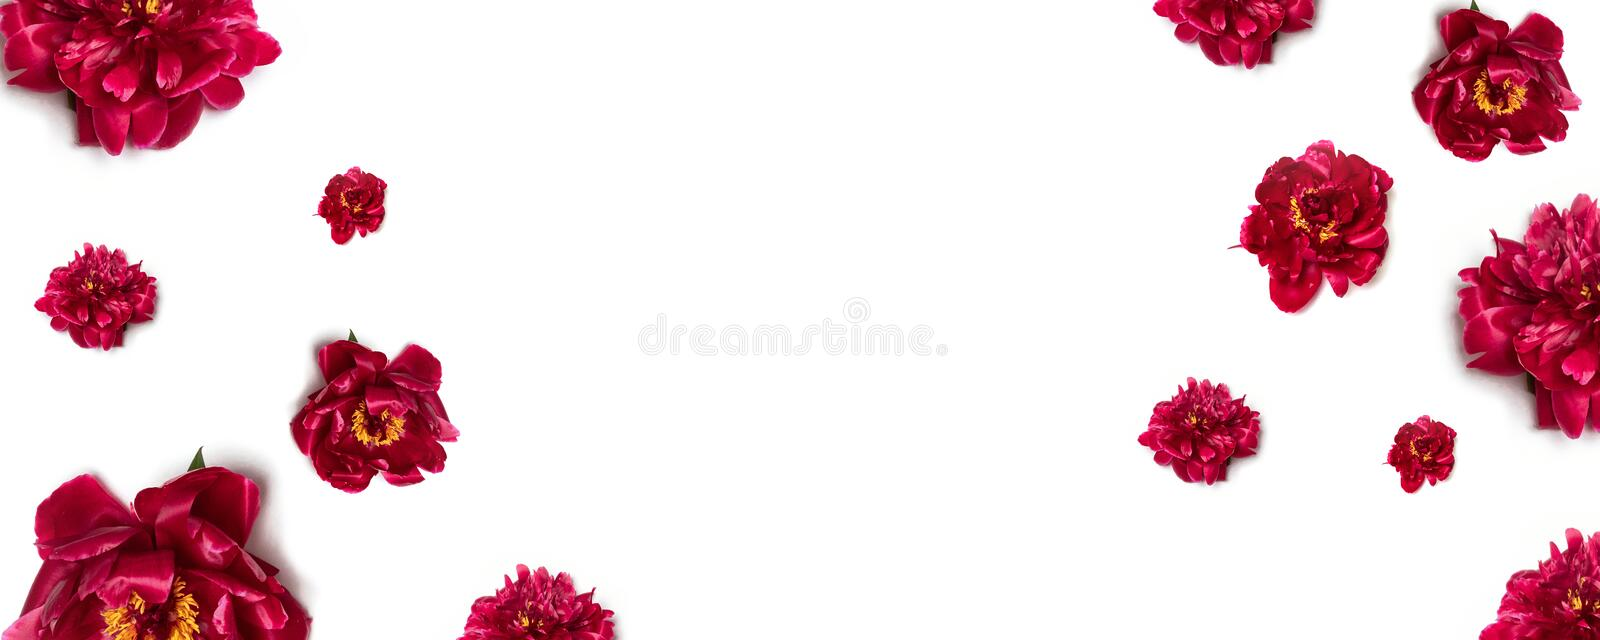 Peony Flower Arrangement. Floral pattern of red peony flowers on white background stock images